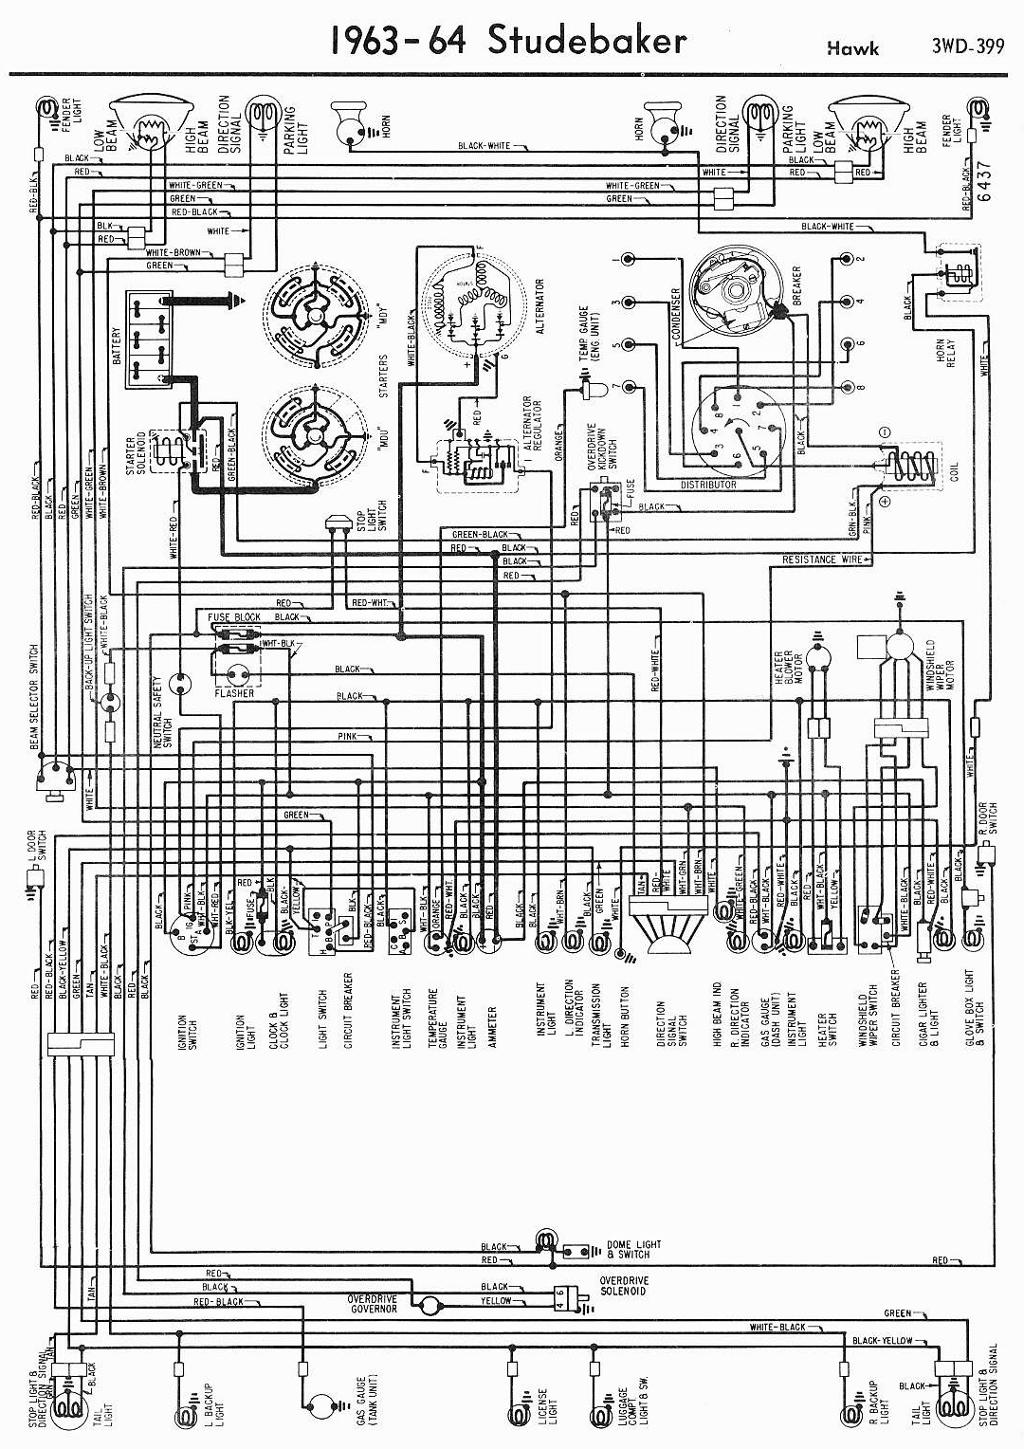 Studebaker Car Manuals Wiring Diagrams Pdf Fault Codes Lighter Diagram Download